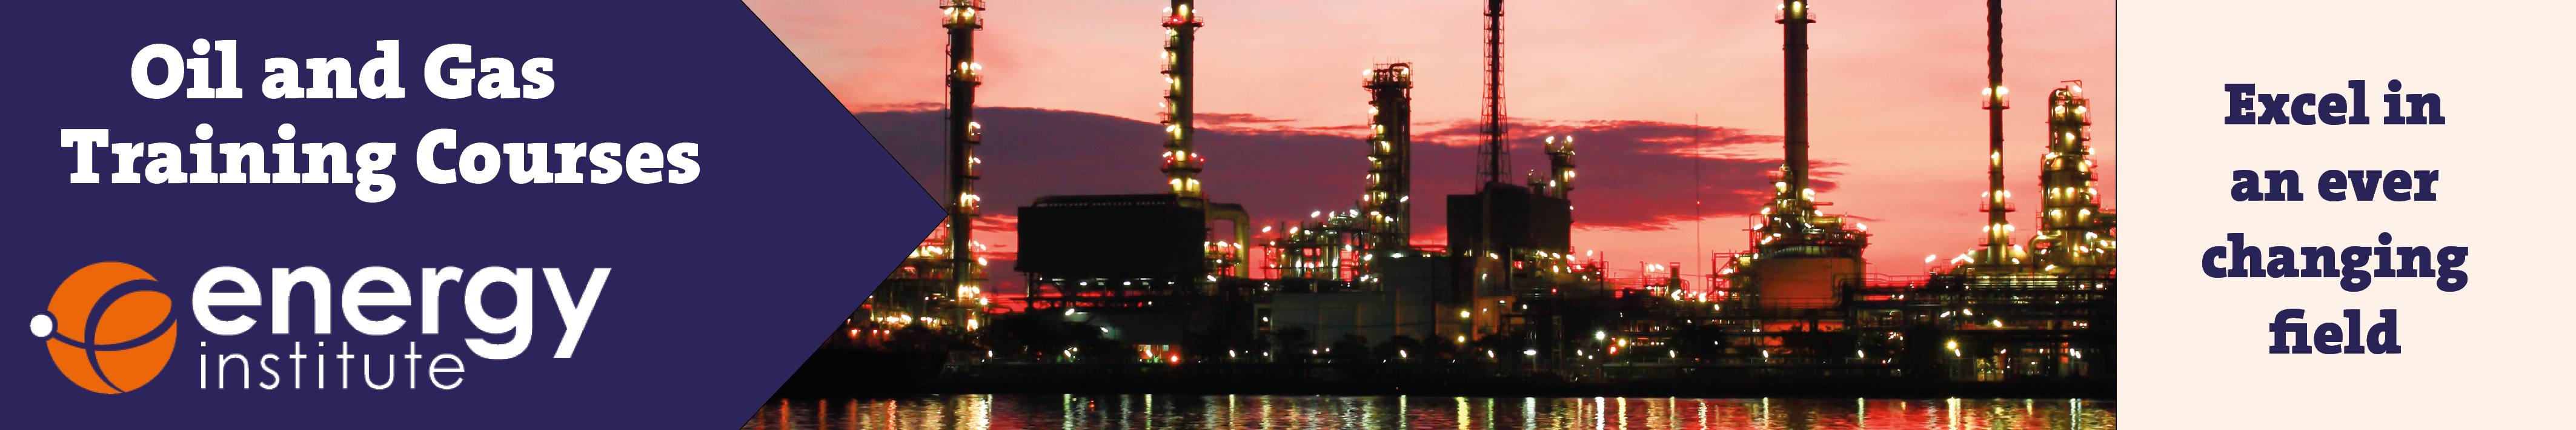 Oil-and-gas-banner-1500x250-without-discount.png